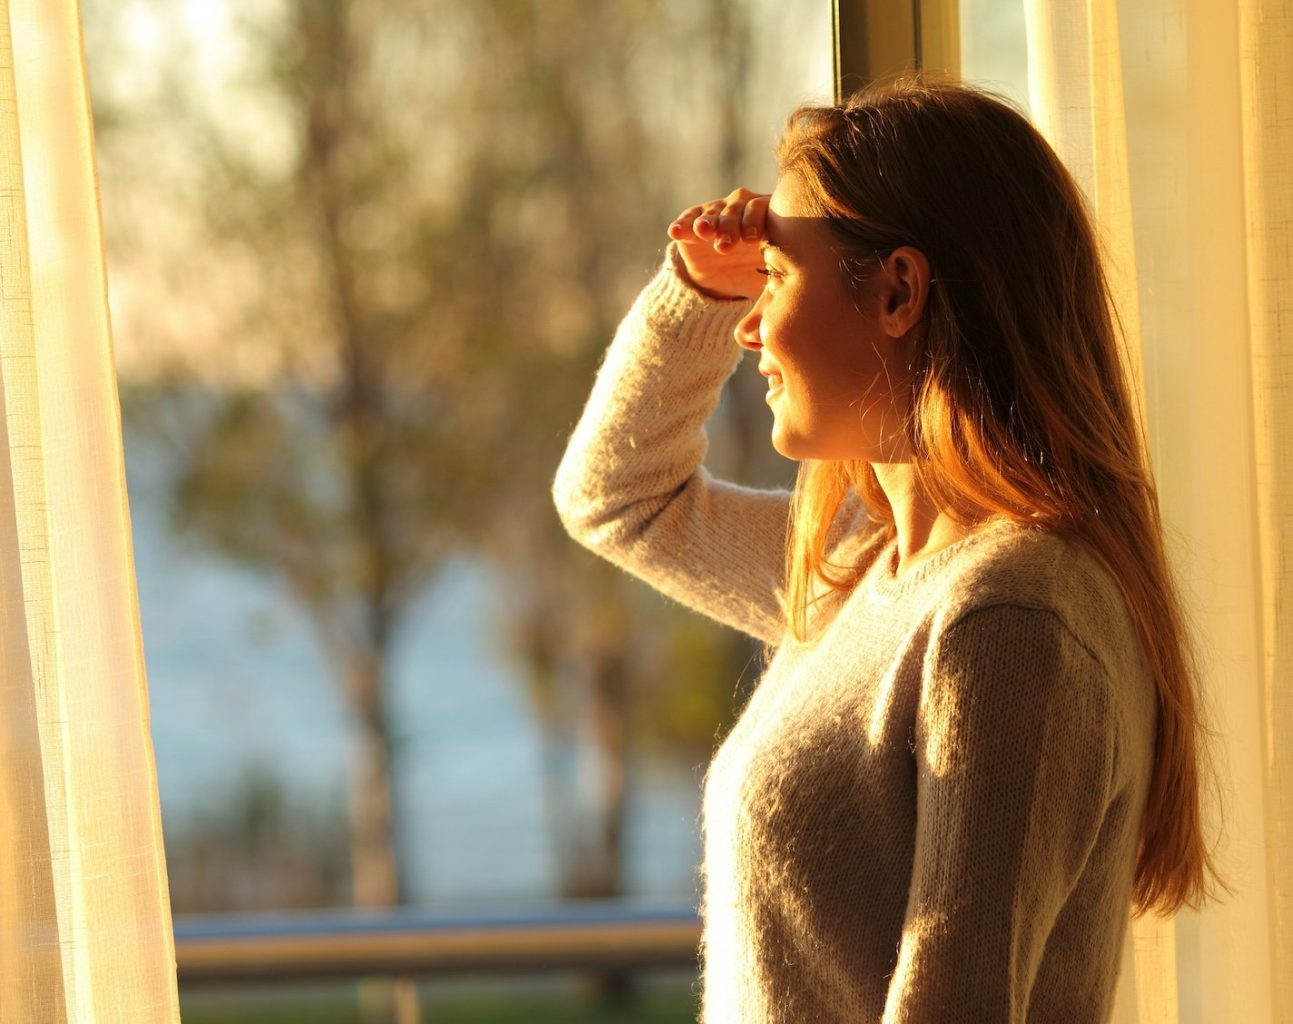 Glare Issues & Excessive Heat Problems As You Spend Time At Home? - Home Window Tinting in Cedar Rapids and Iowa City, Iowa